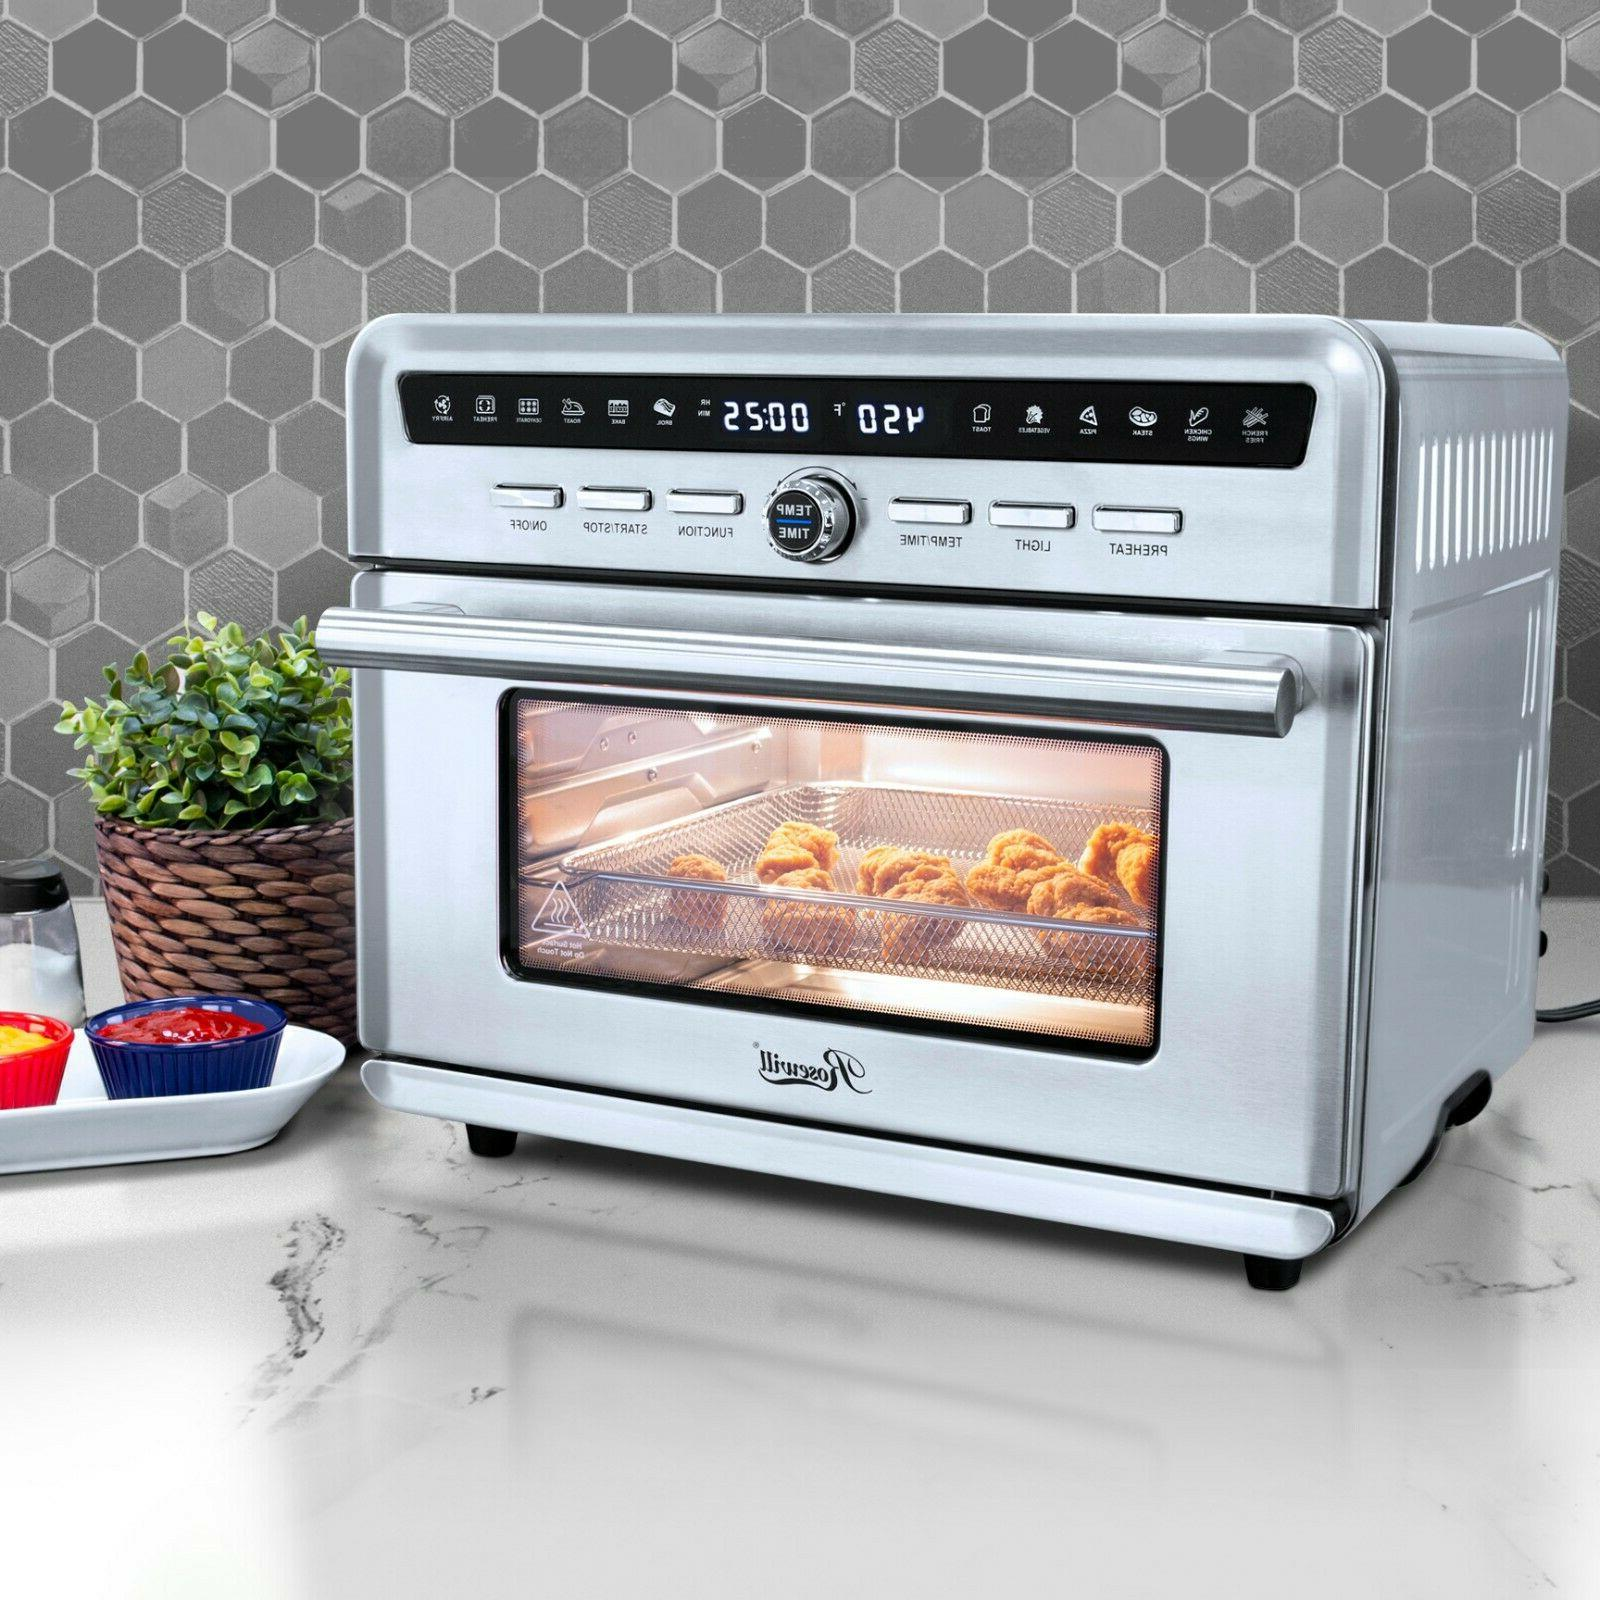 Rosewill Air Convection Toaster Size 26.4 Quart